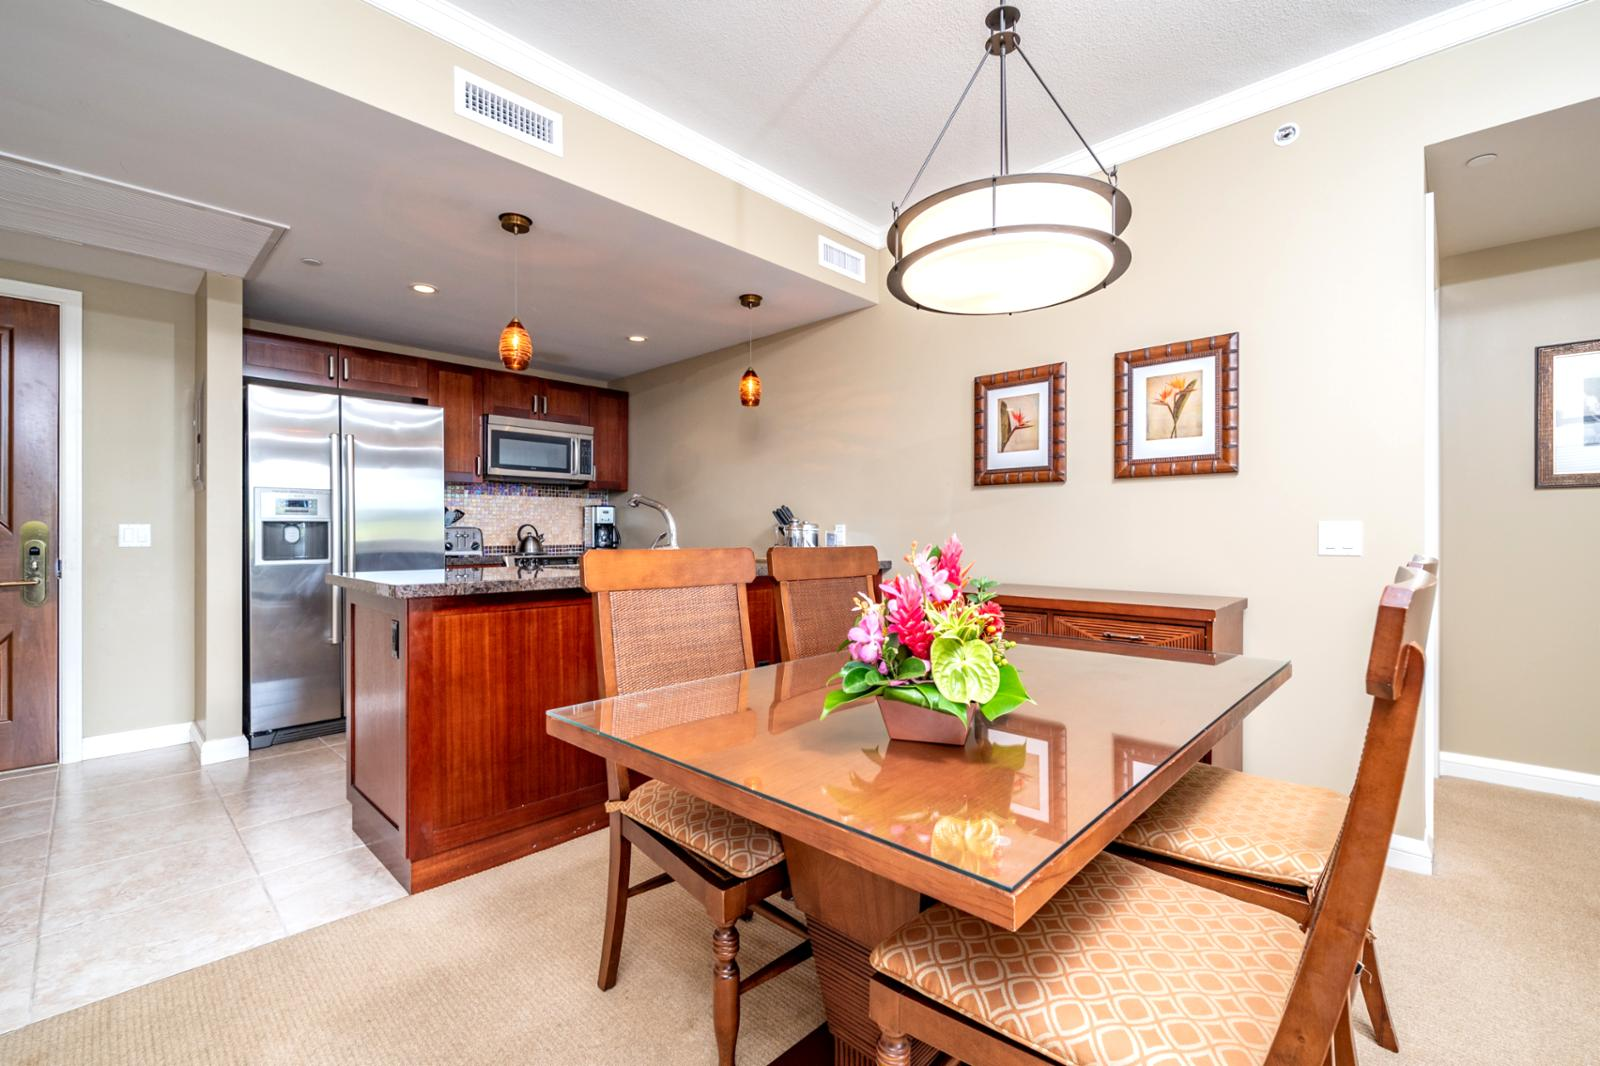 Formal dining room seating for (4)